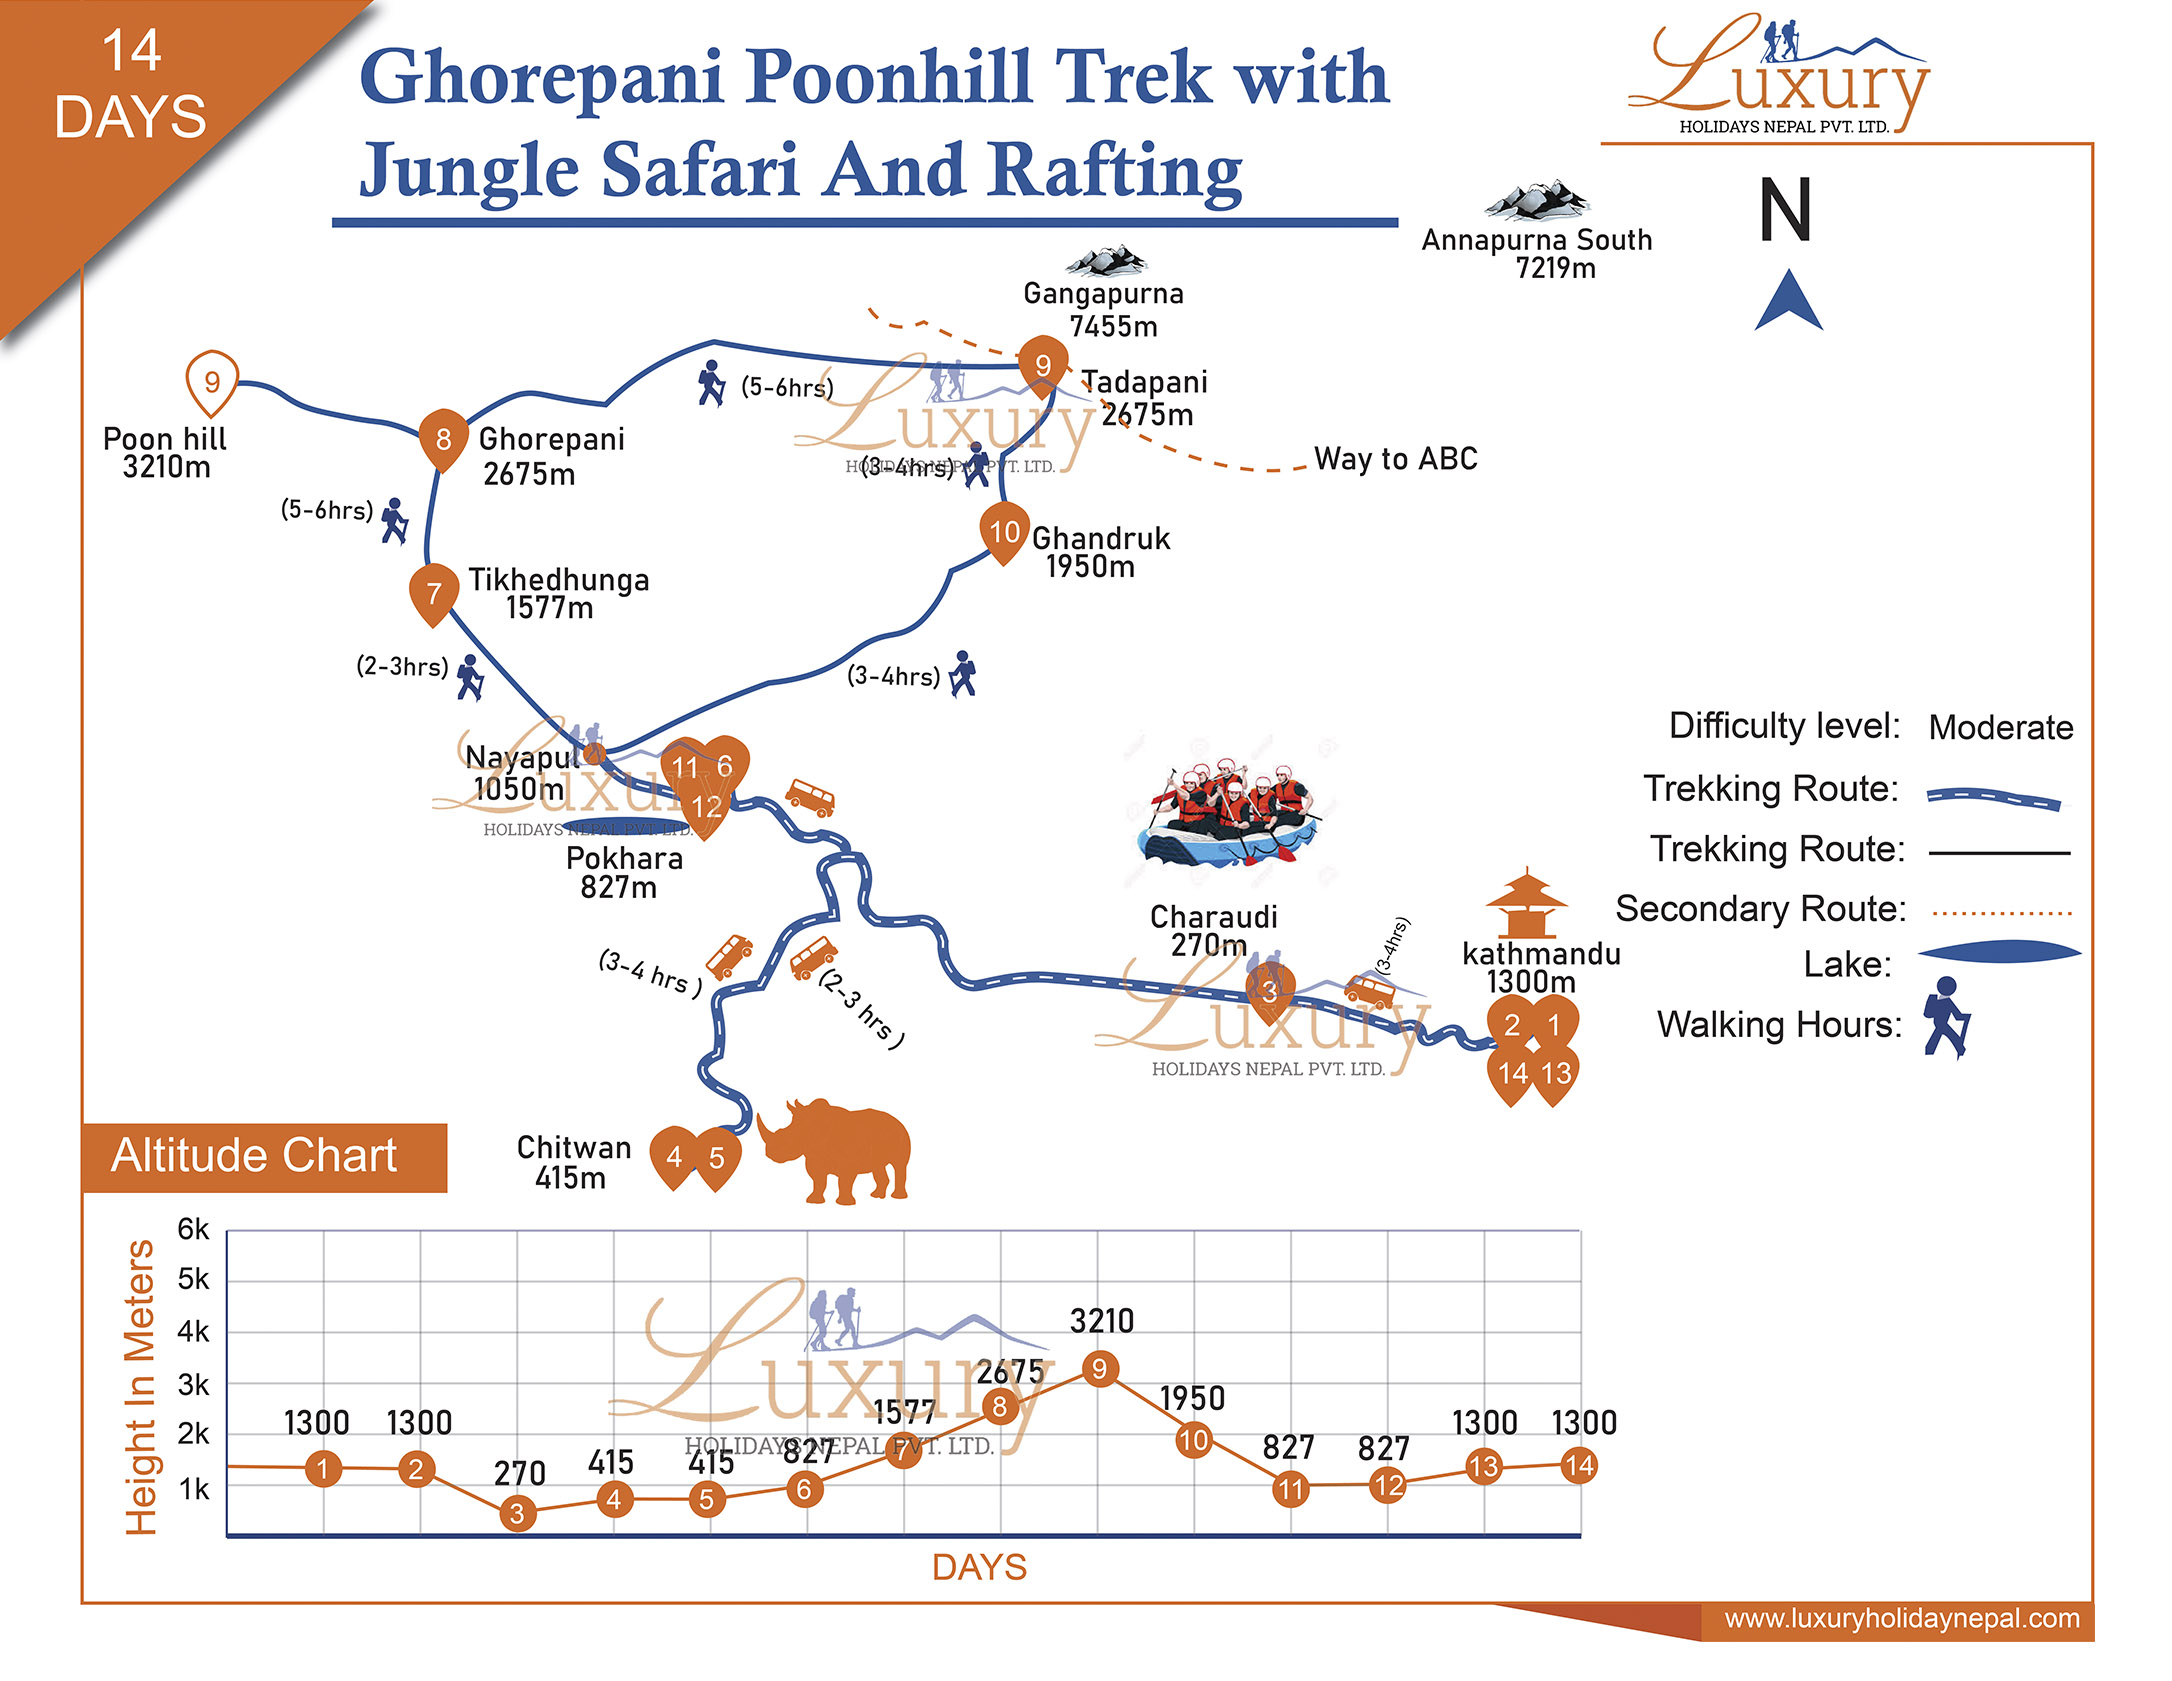 Ghorepani Poonhill Trek with Jungle Safari, Rafting and 5 star accommodation in cities Trip Map